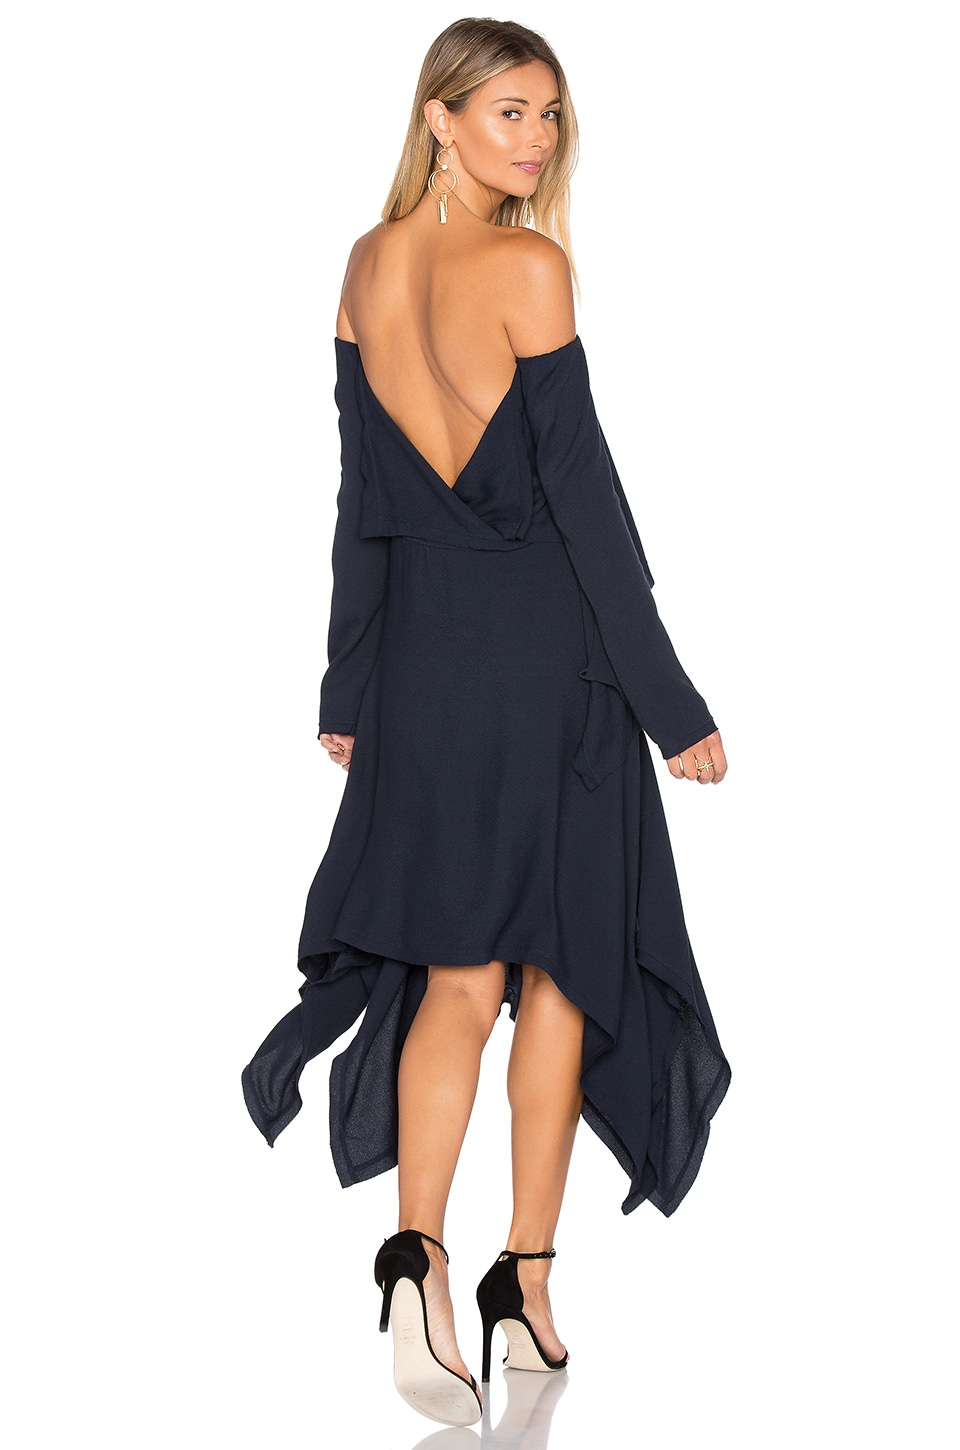 KITX Off Shoulder Backless Dress in Midnight